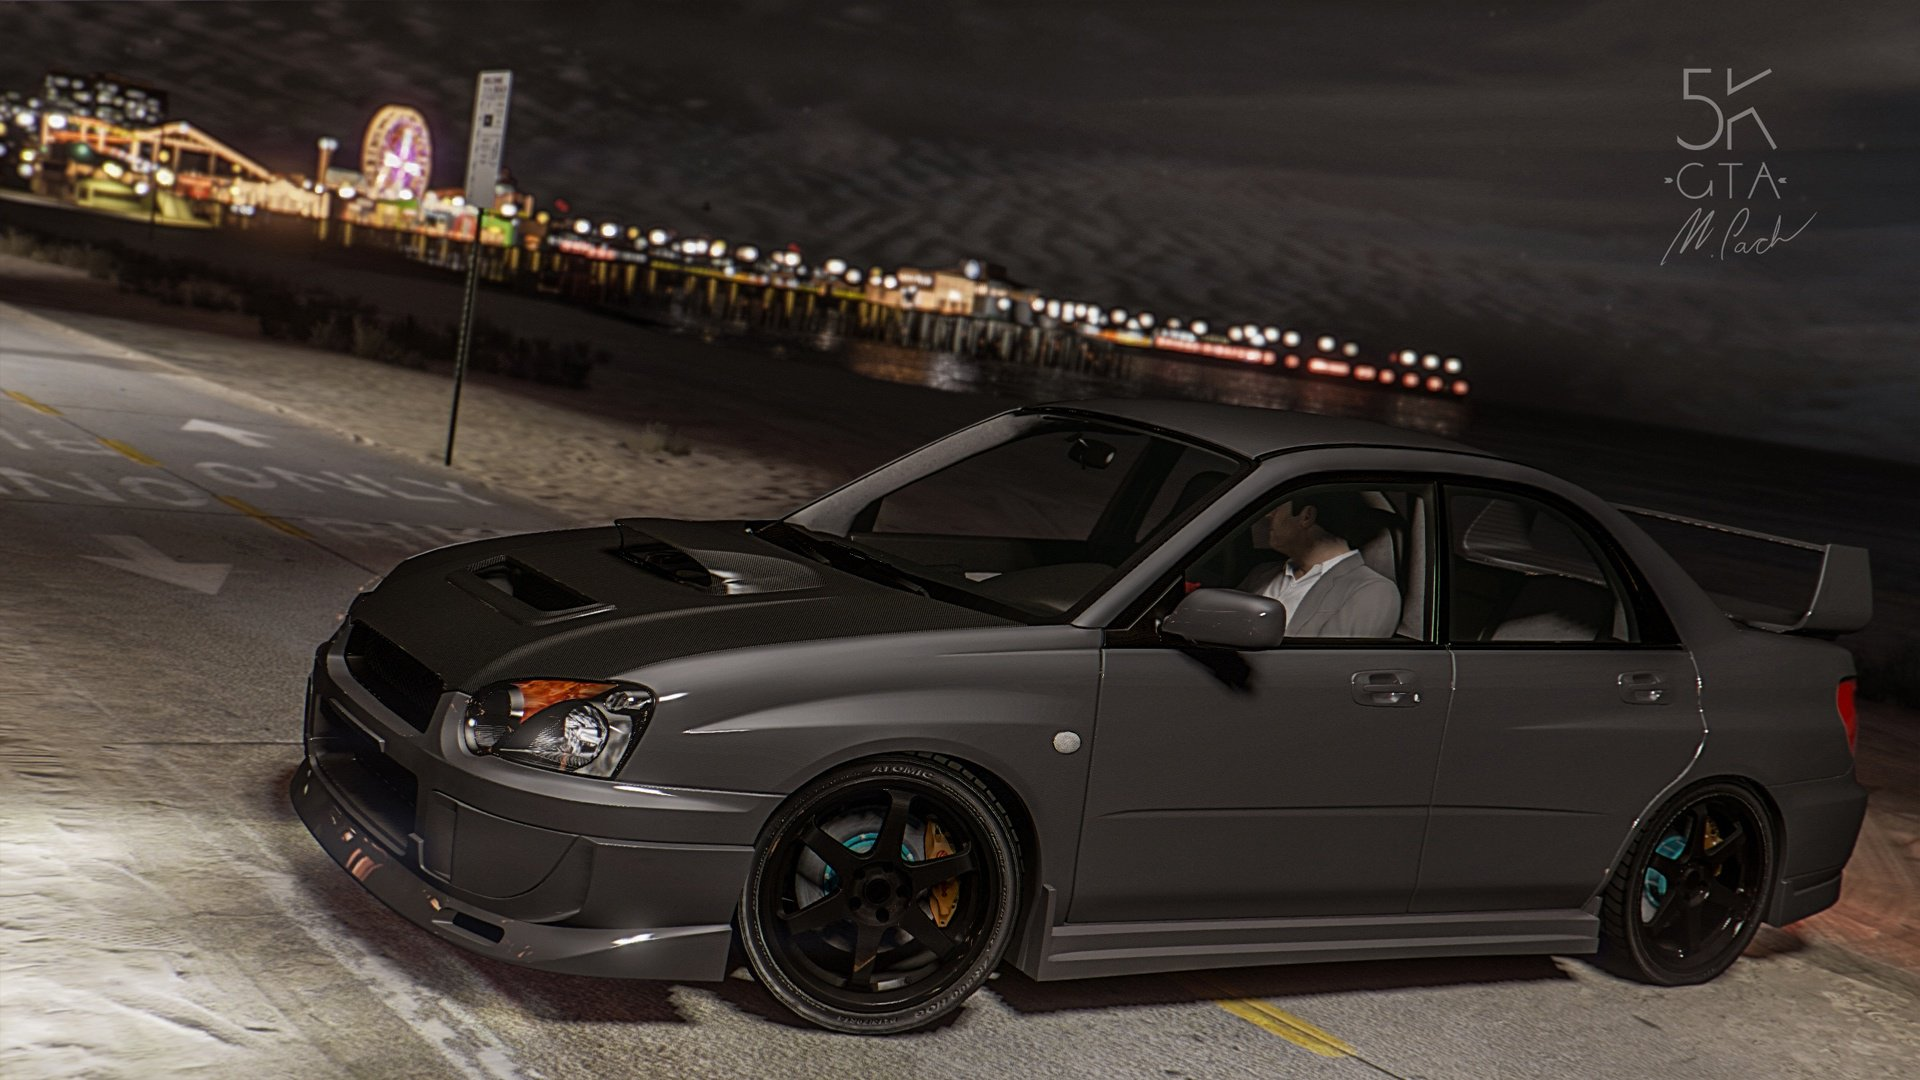 subaru impreza wrx sti 2004 add on tuning vehicules. Black Bedroom Furniture Sets. Home Design Ideas